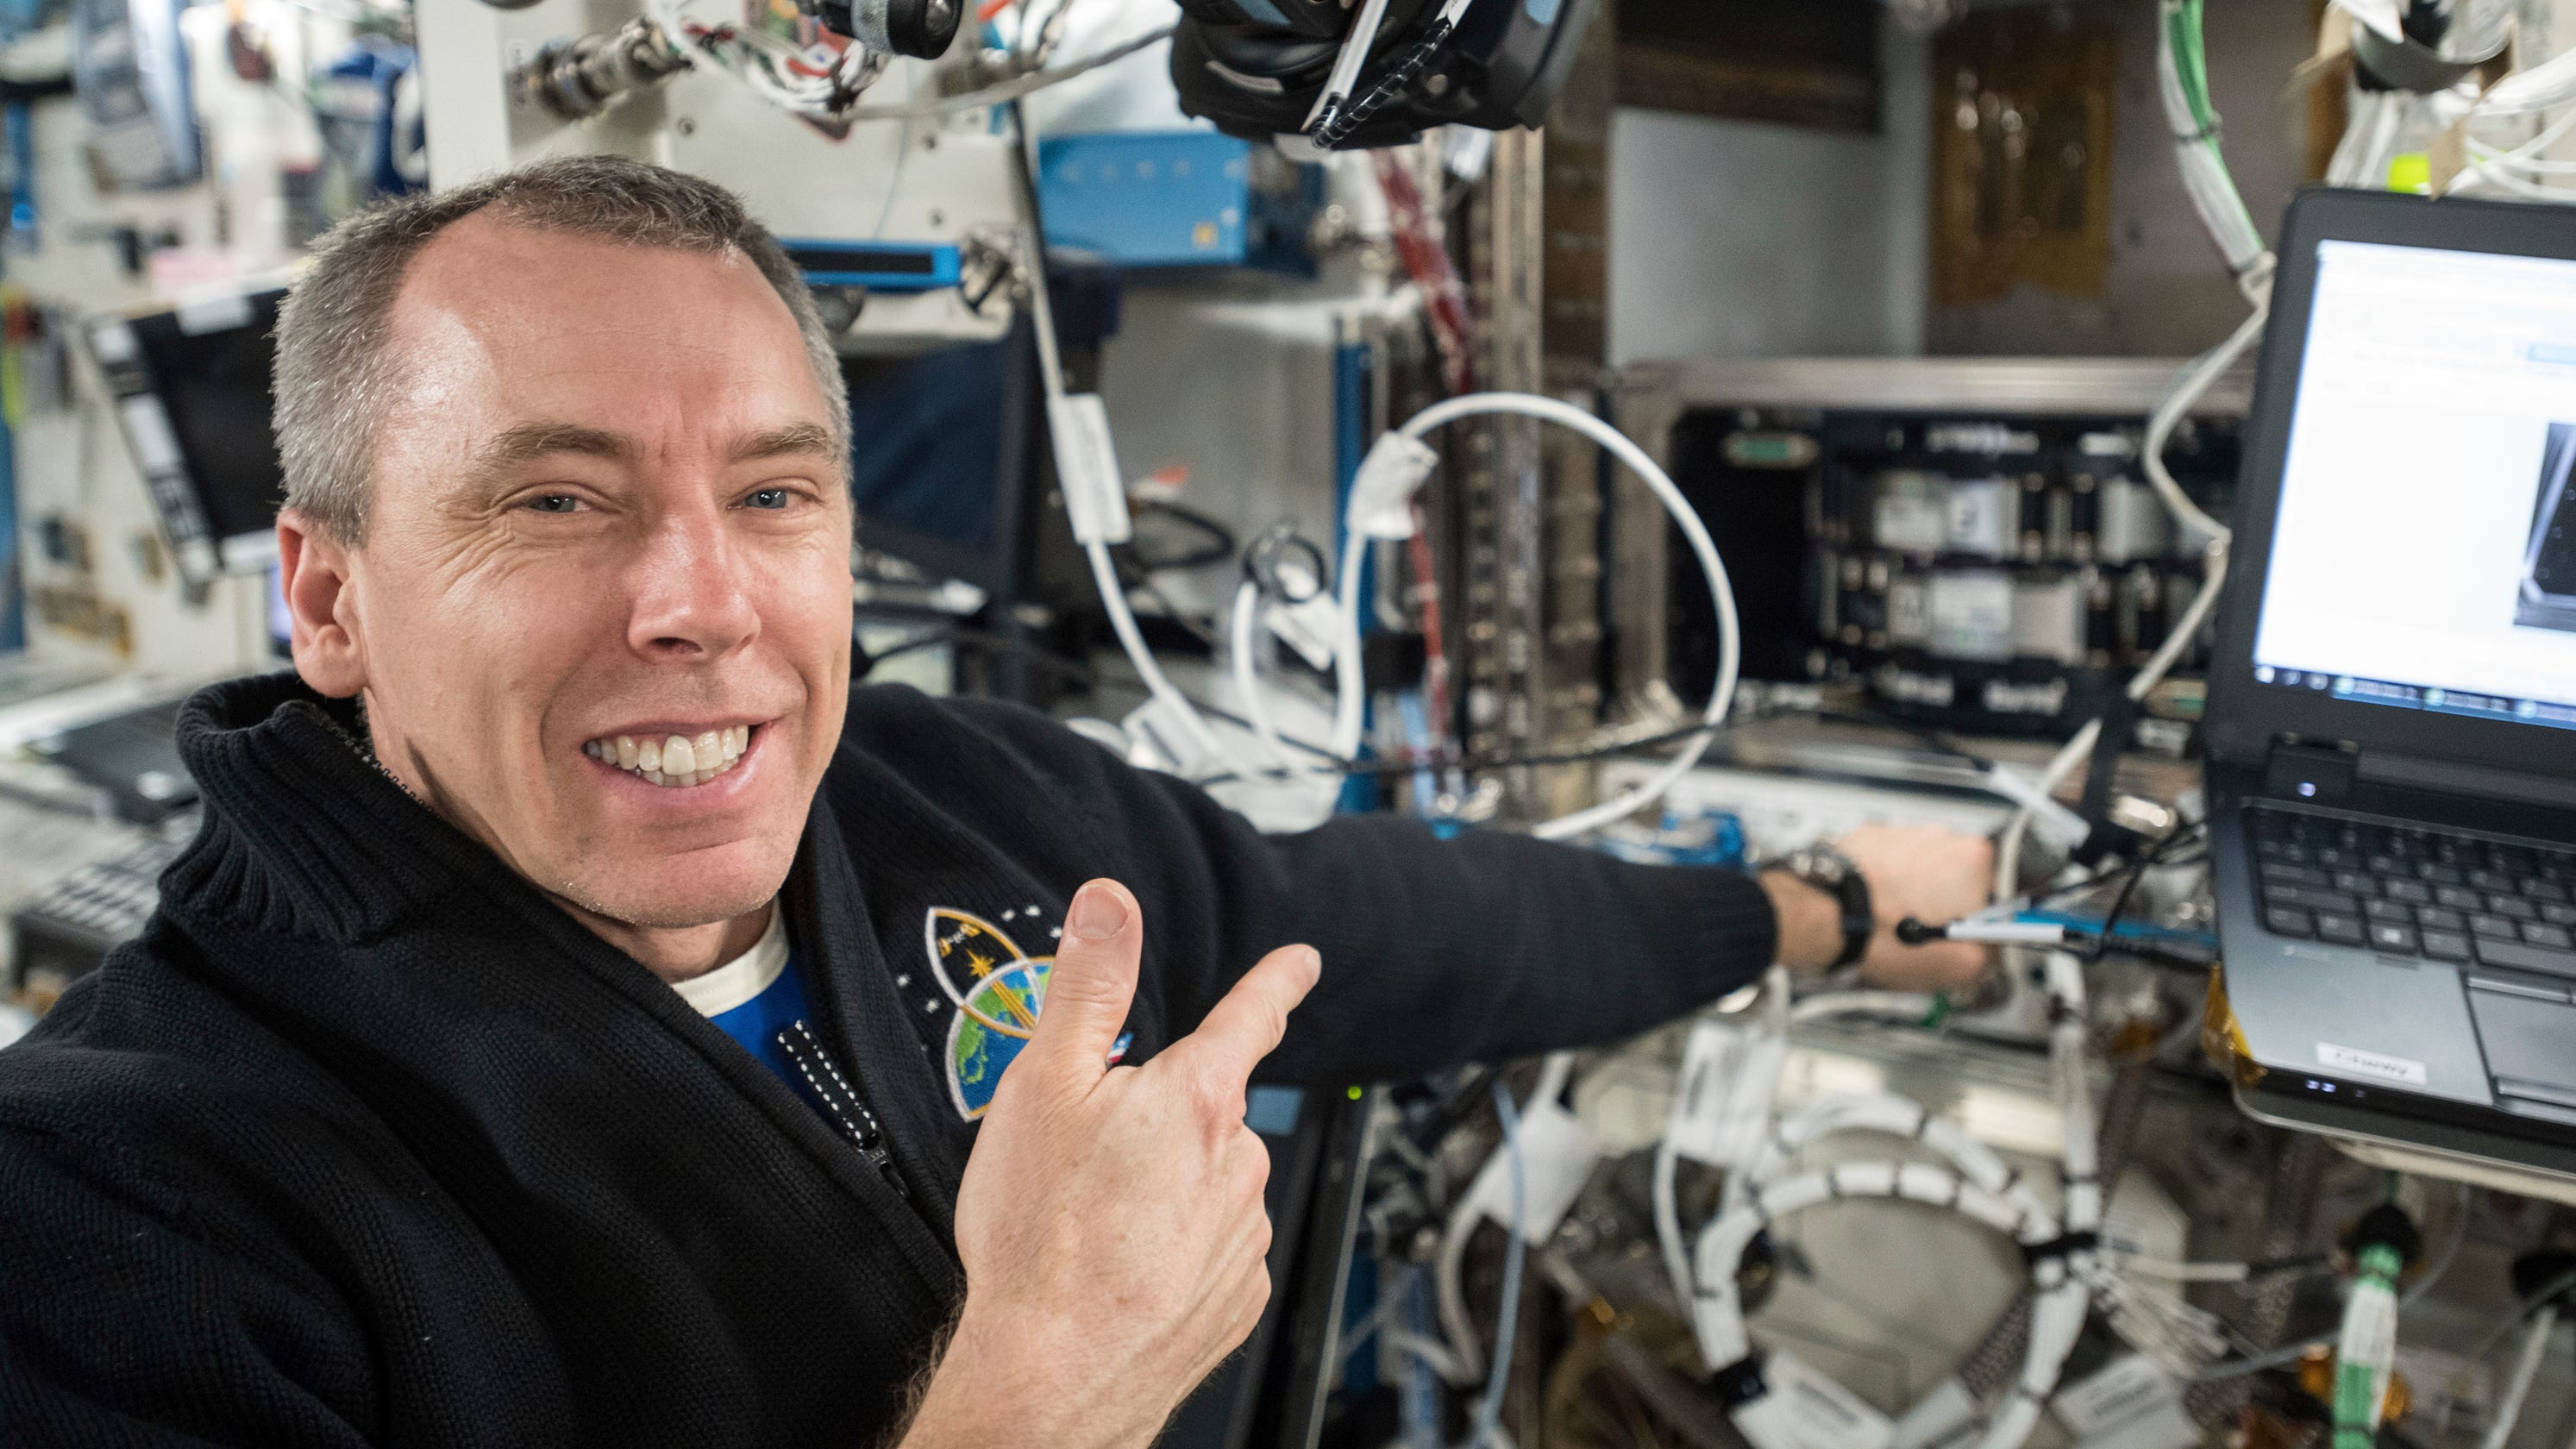 astronauts in space right now - photo #40